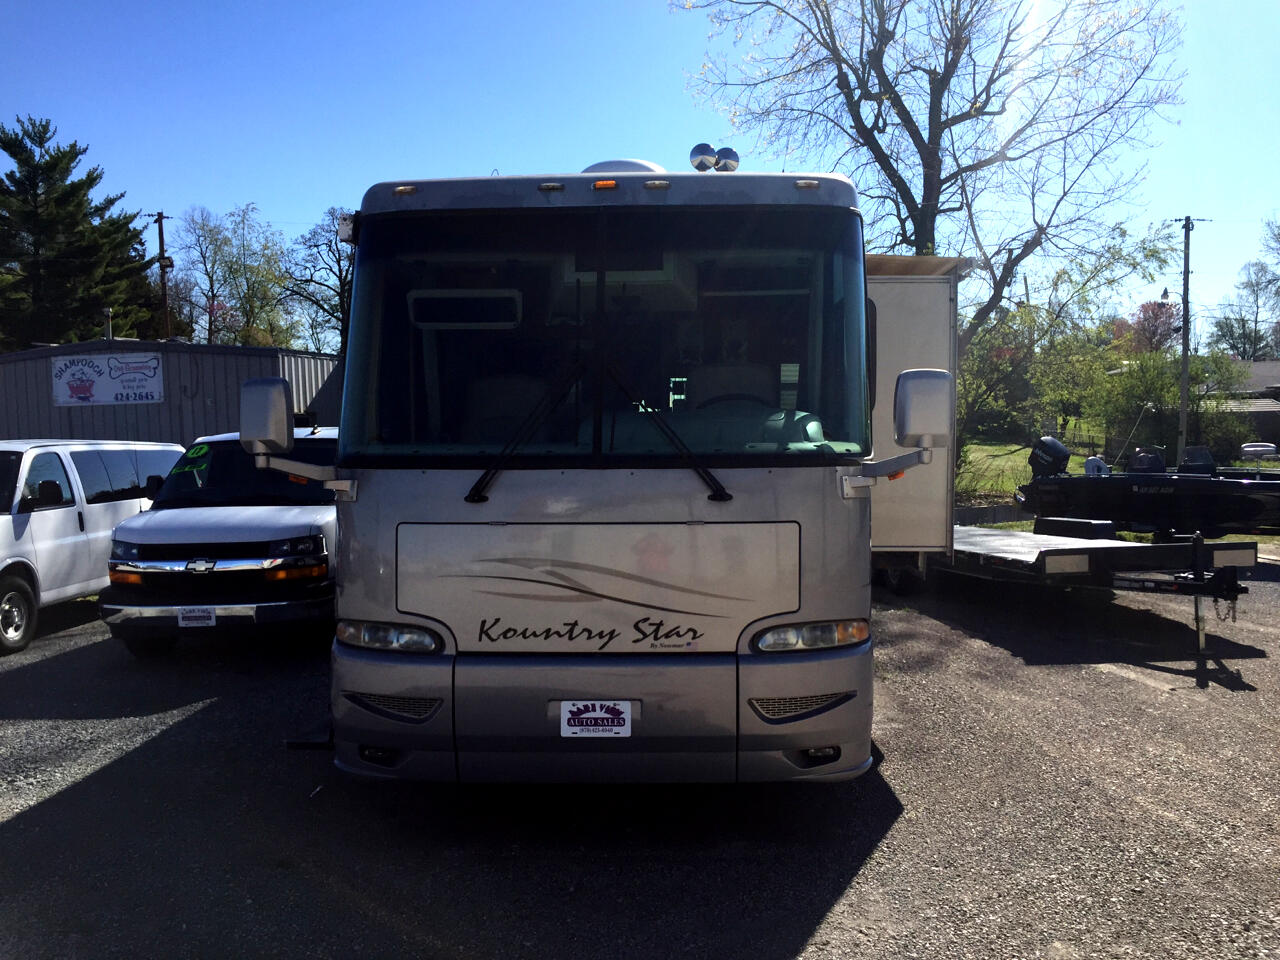 2003 Newmar Kountry Star